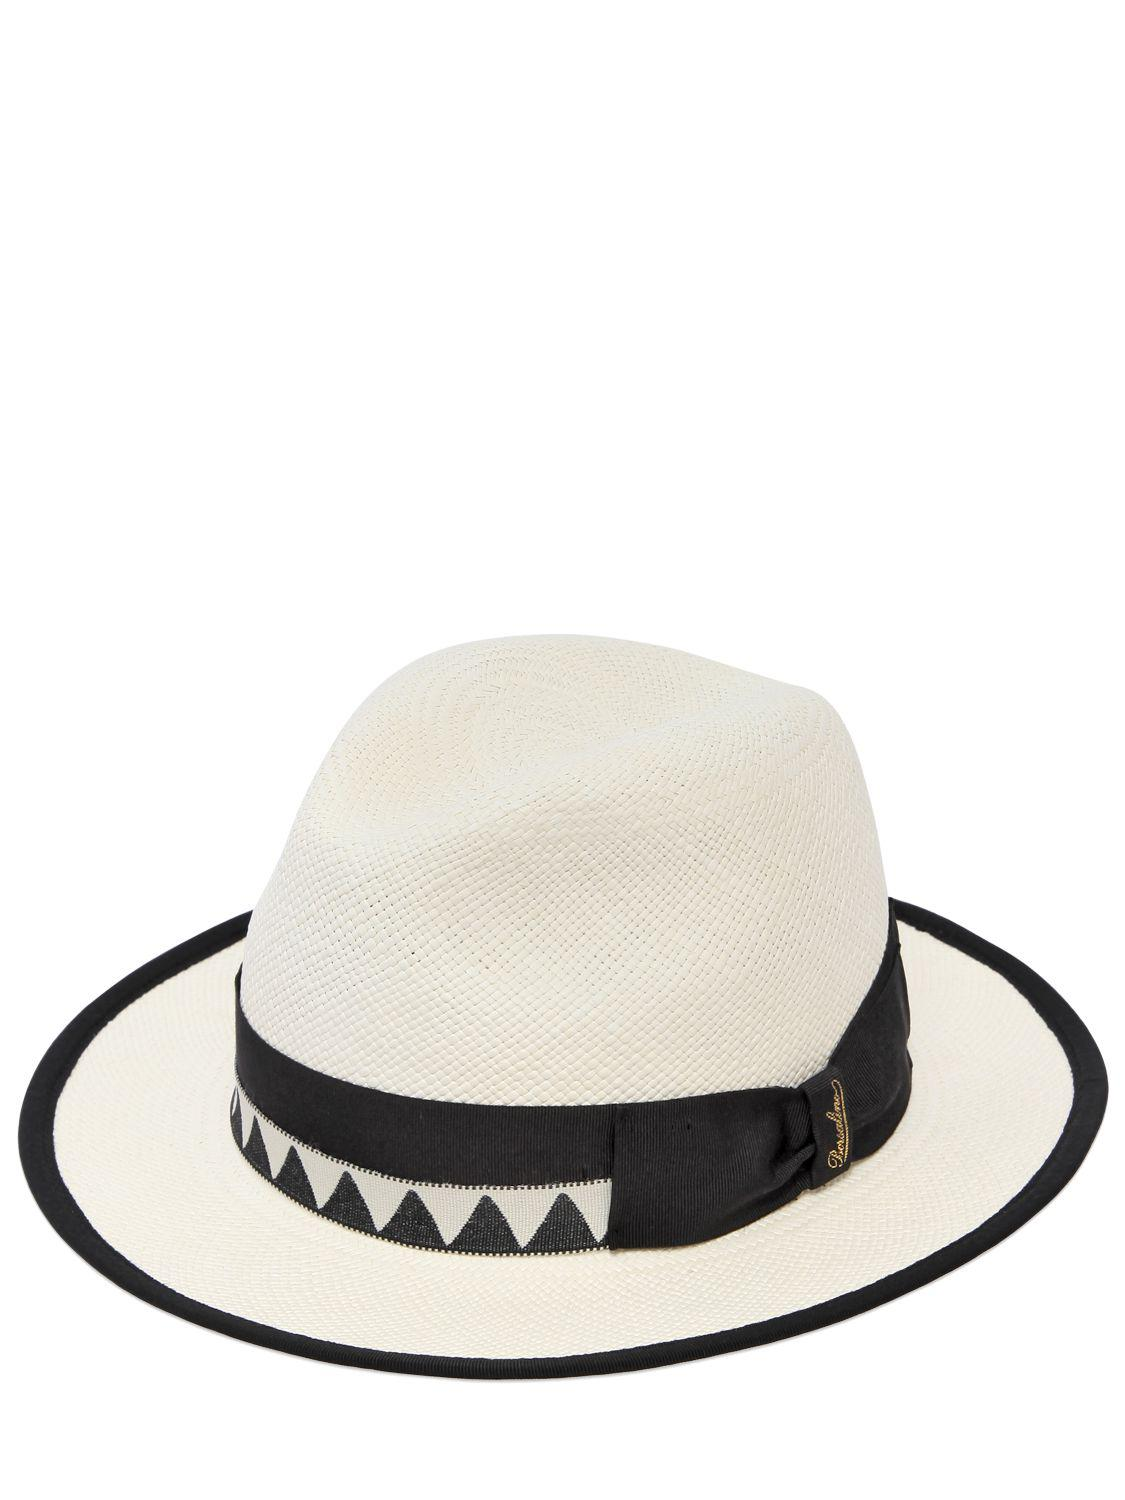 766962c44e48e Gallery. Previously sold at: LUISA VIA ROMA · Men's Panama Straw Hats ...